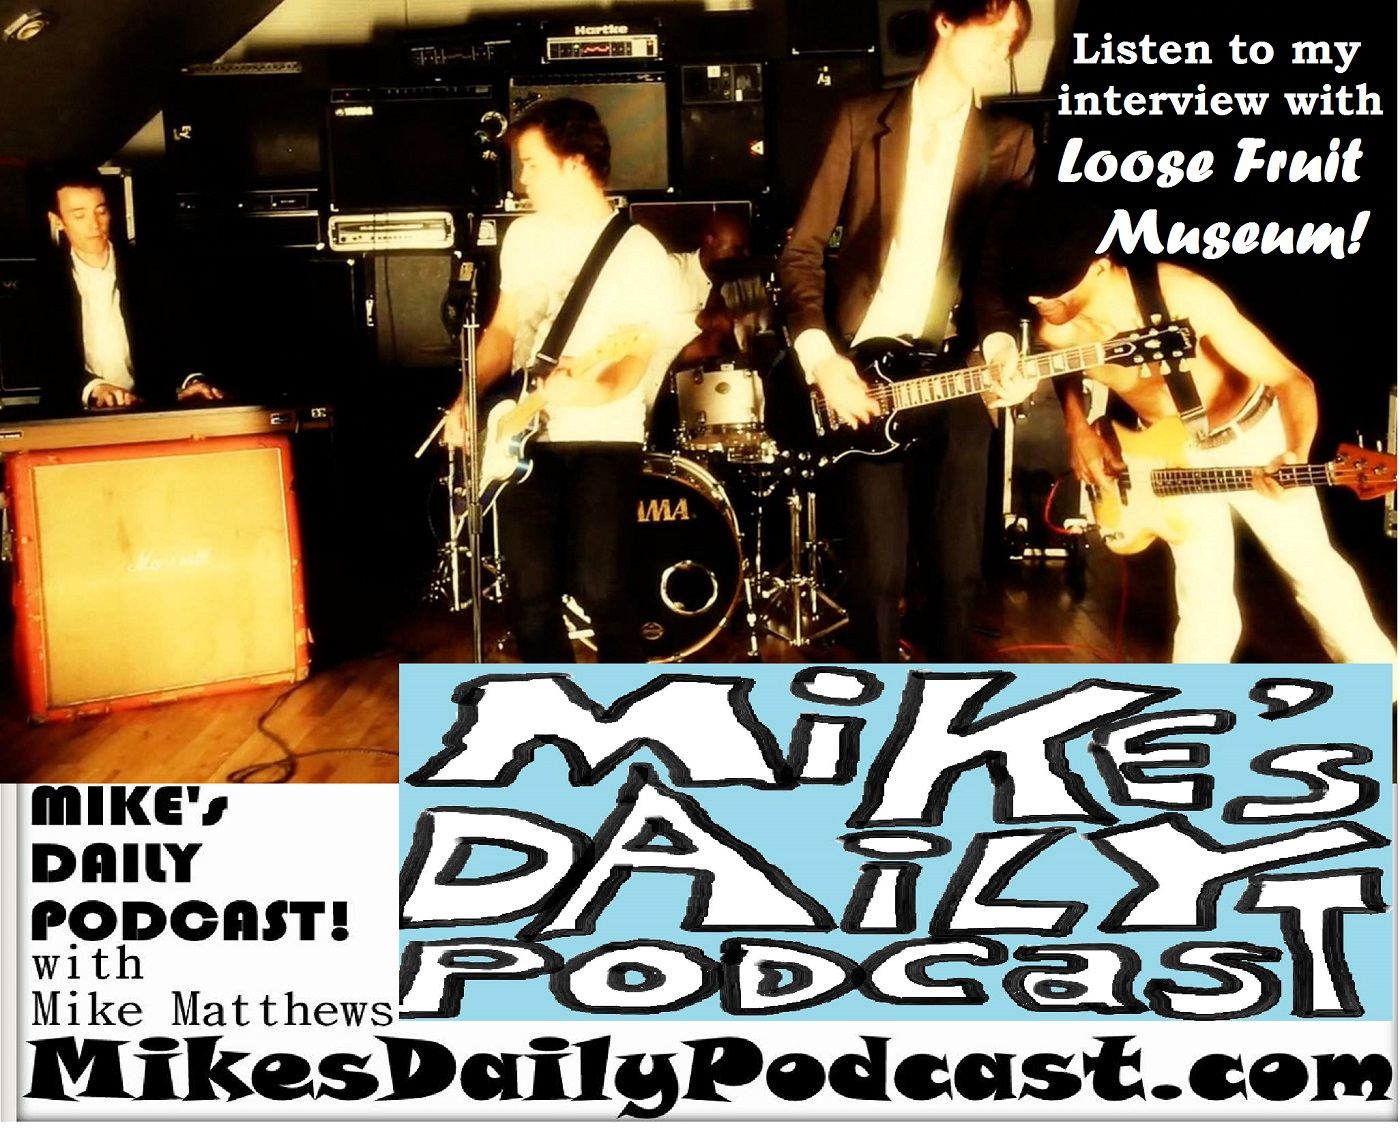 MIKEs DAILY PODCAST 968 Loose Fruit Museum